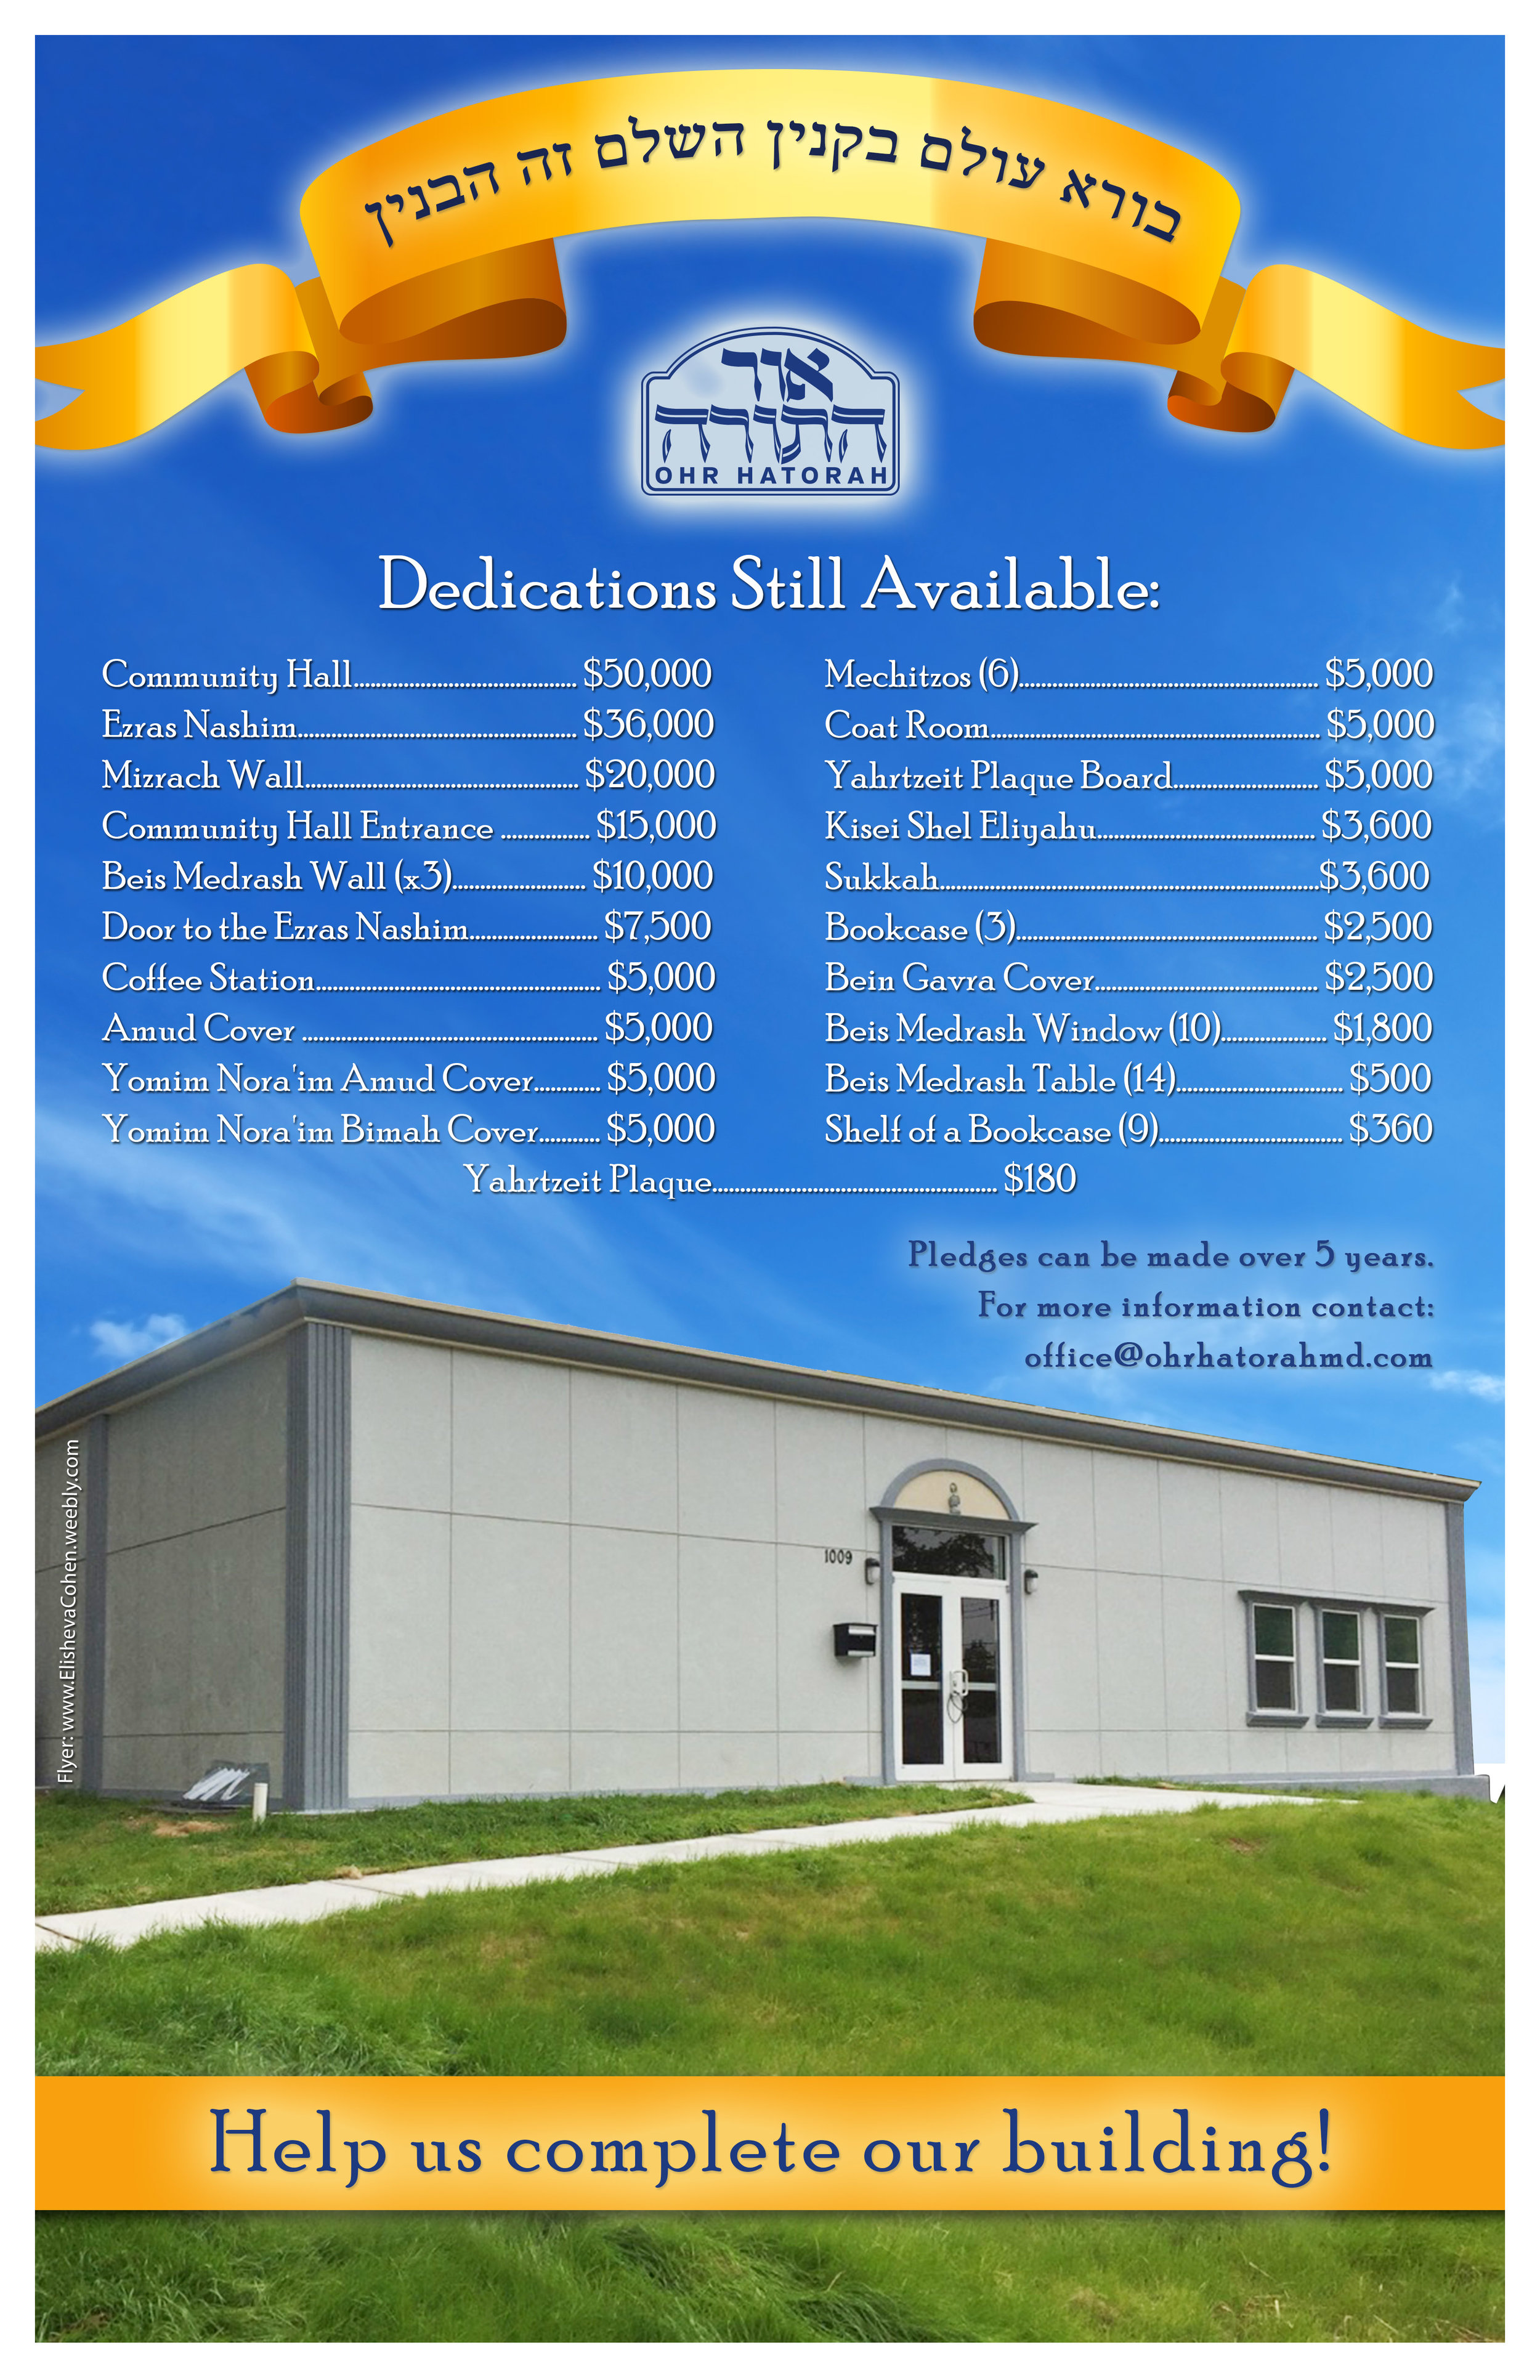 Contact us or click here for available dedication opportunities